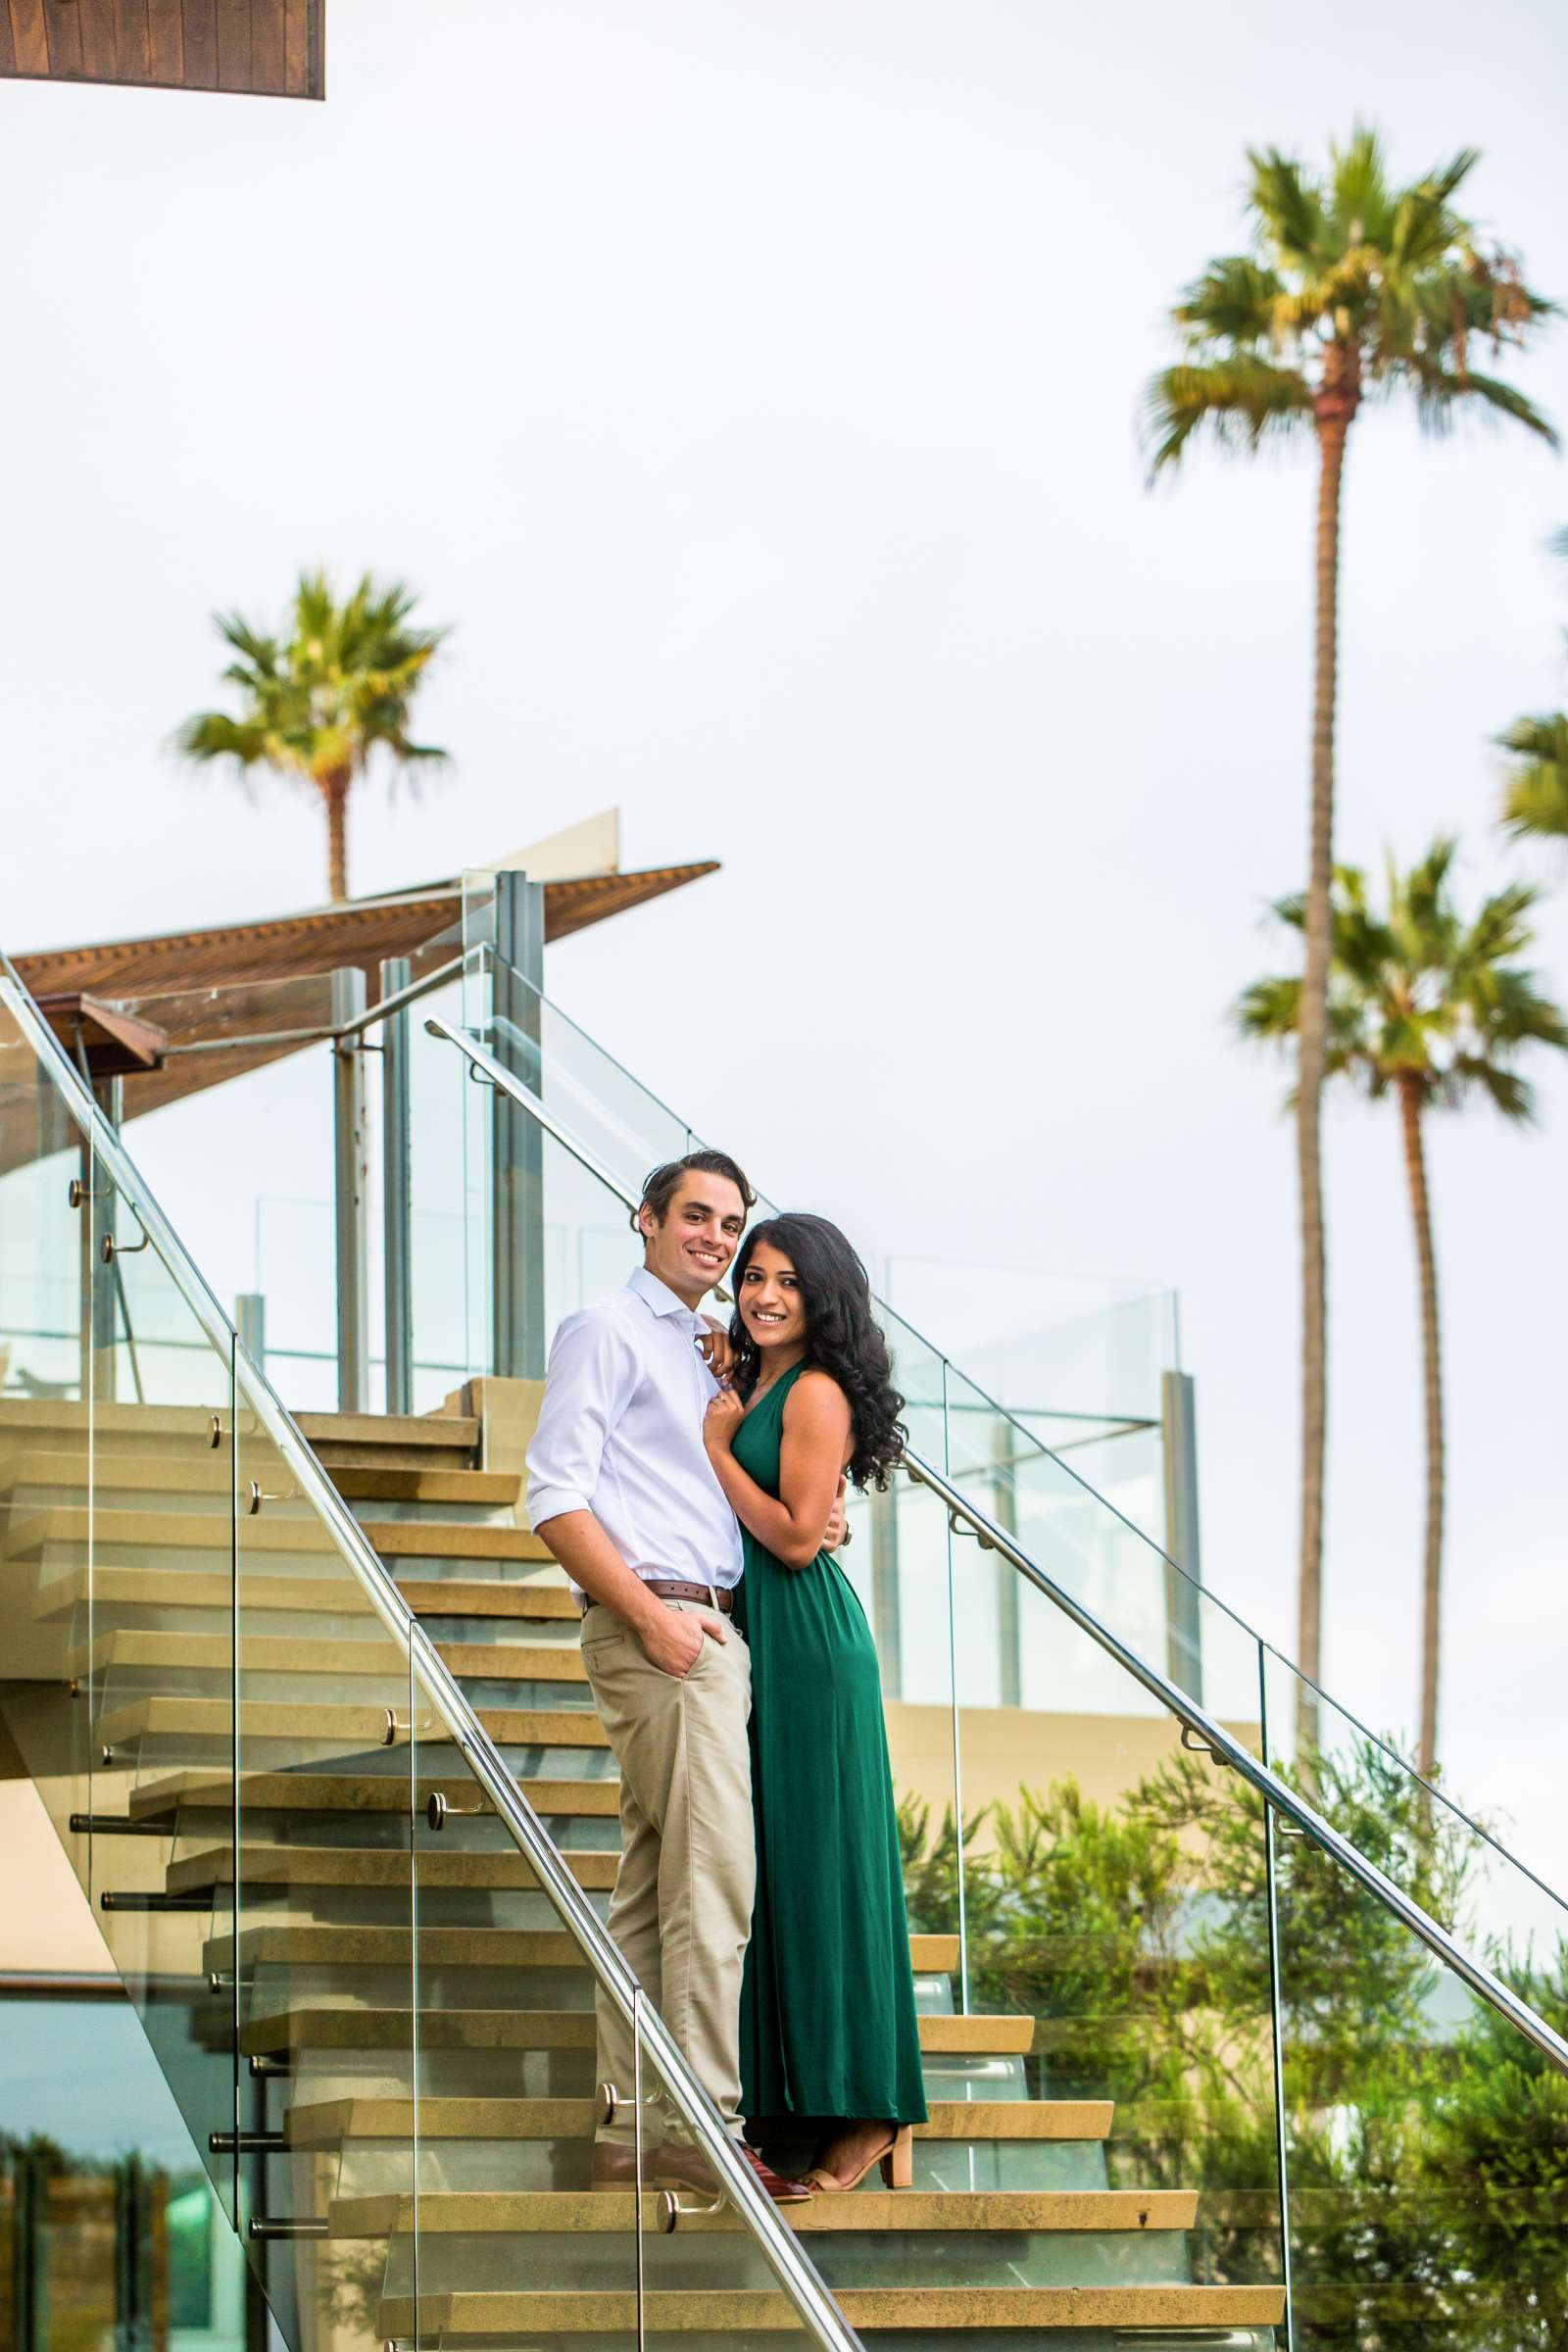 Grand Tradition Estate Engagement, Nikita and Jaycob Engagement Photo #9 by True Photography